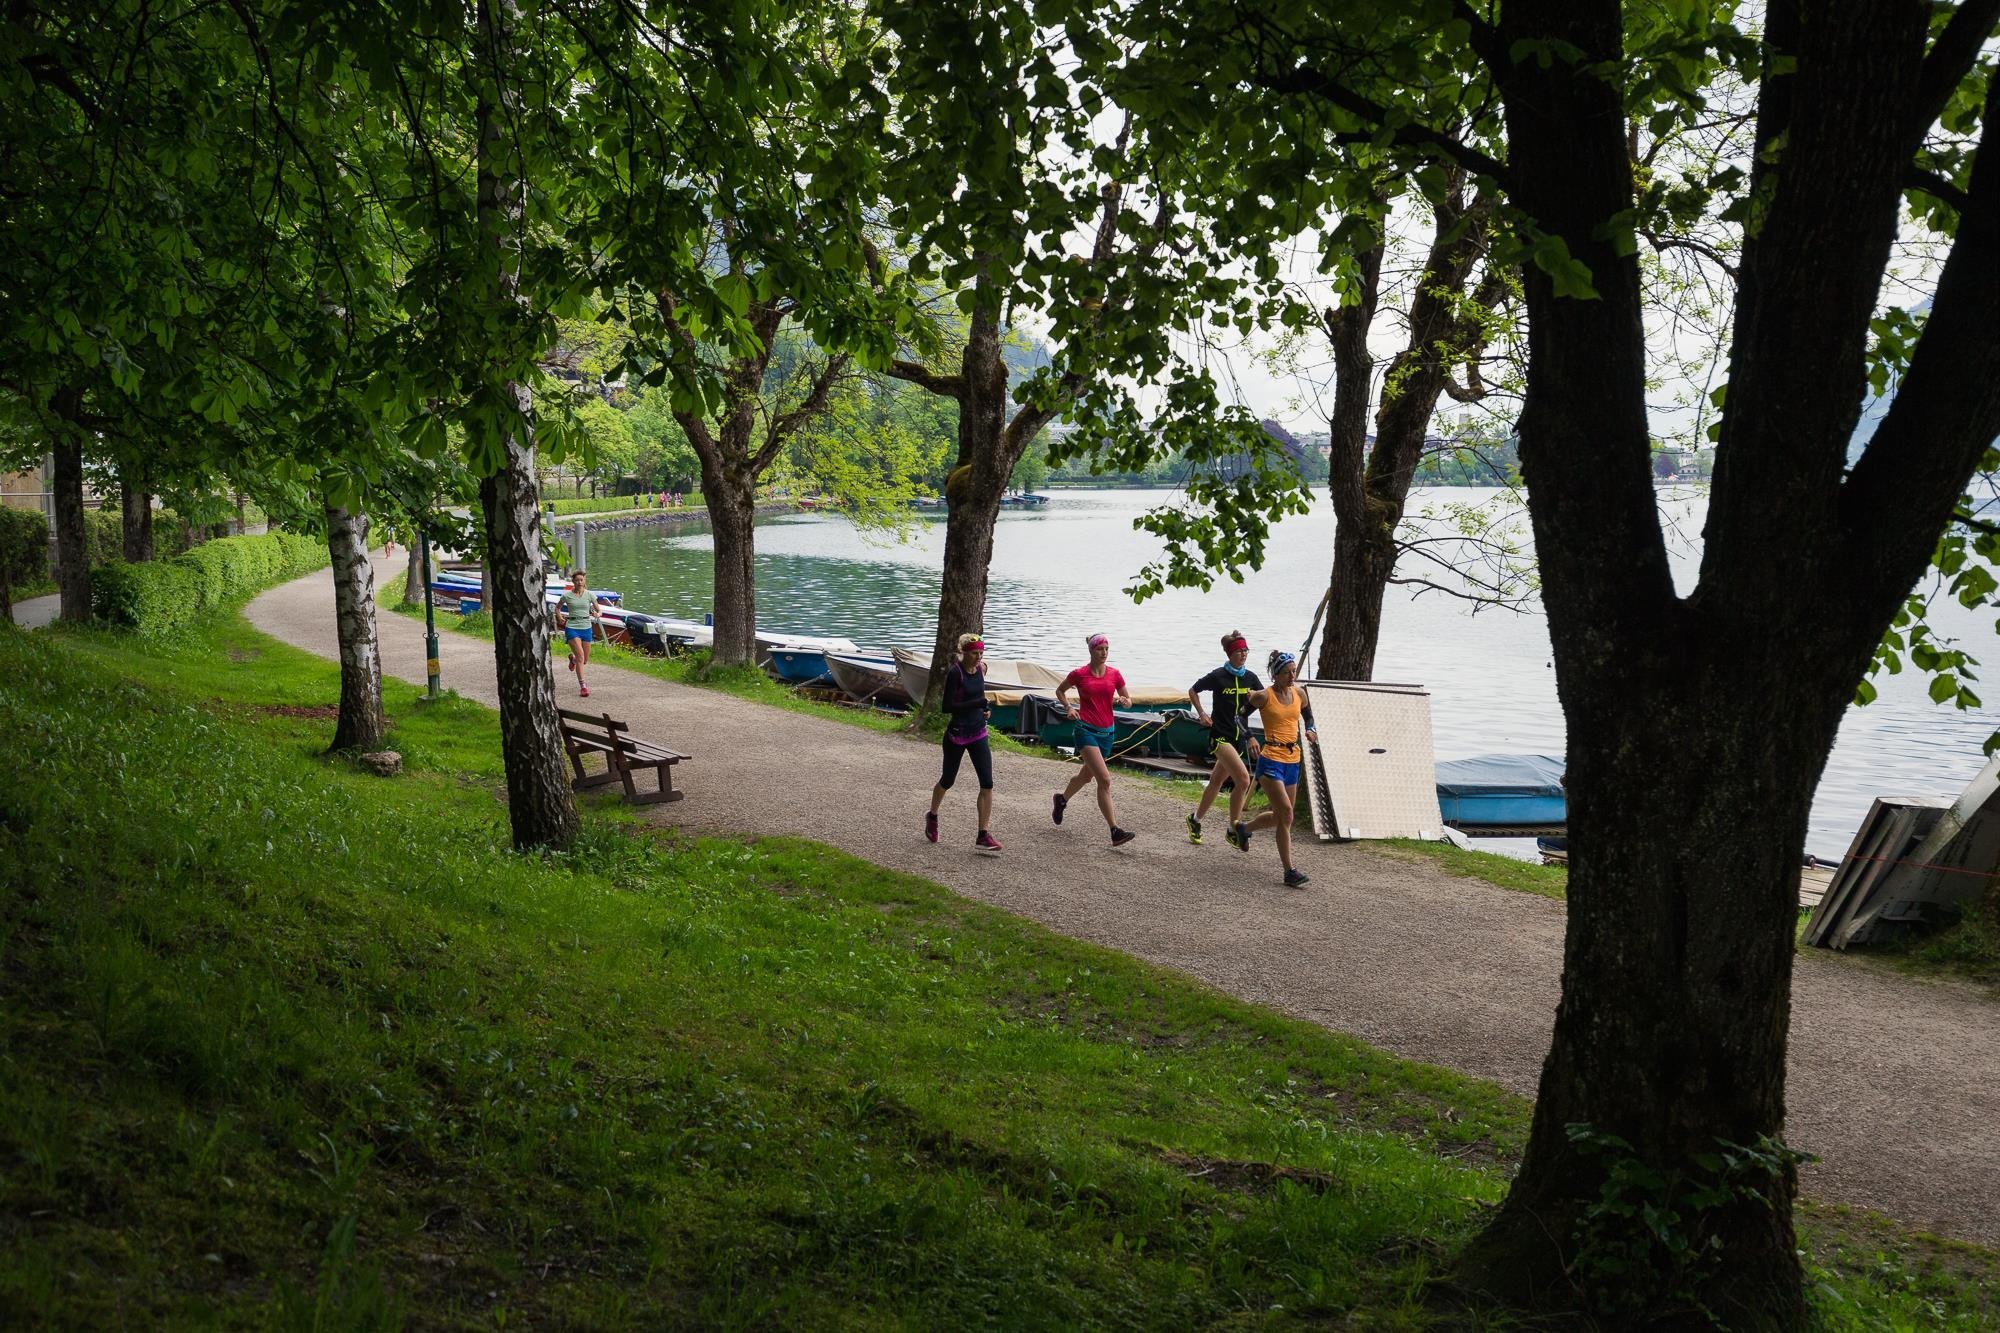 Lake Run: Women's Trail Zell am See-Kaprun - 19/05/2019, from 9:00 AM